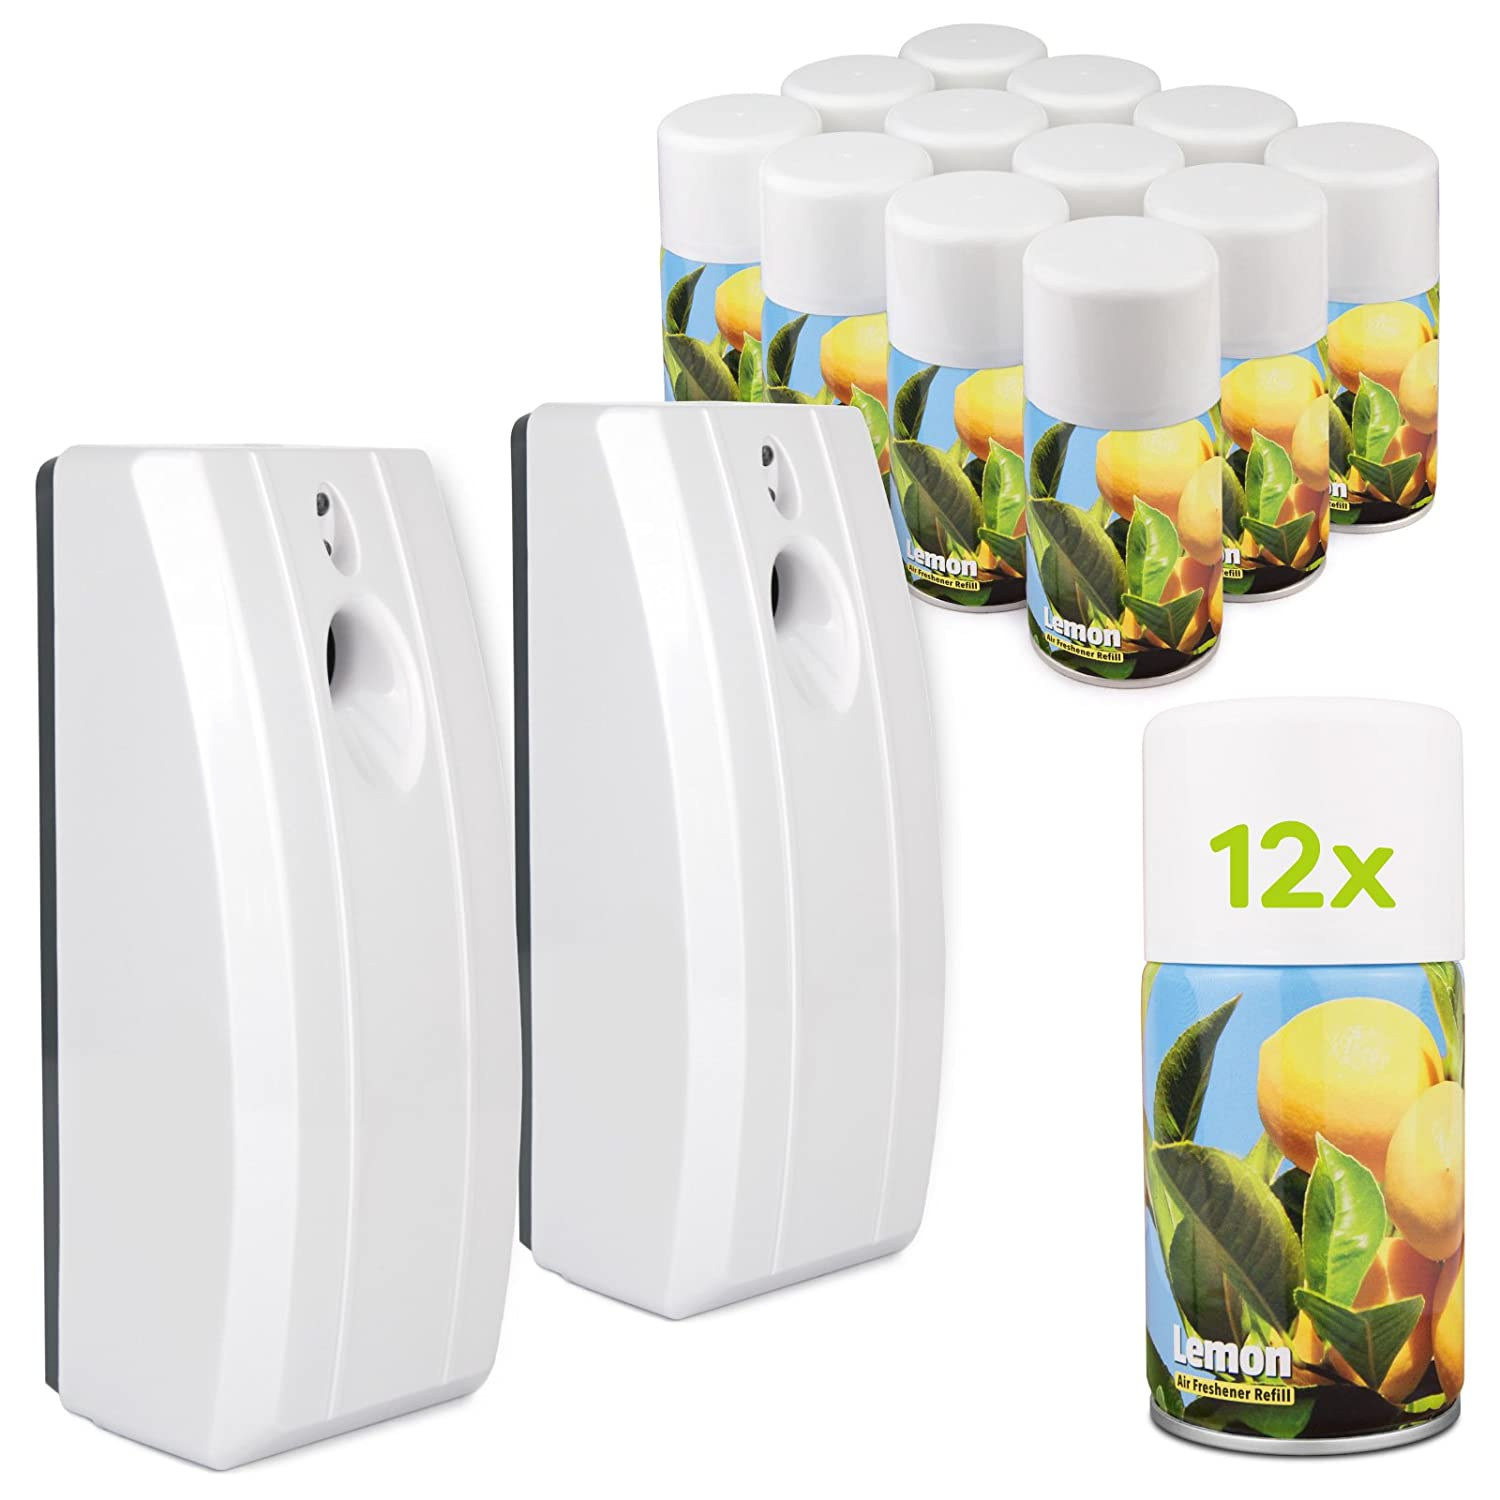 DripDropDry Complete Starter Set - 2 Automatic Air Fresheners & 12 Lemon Aerosol Refill Cans - Commercial Toilet (Grey)